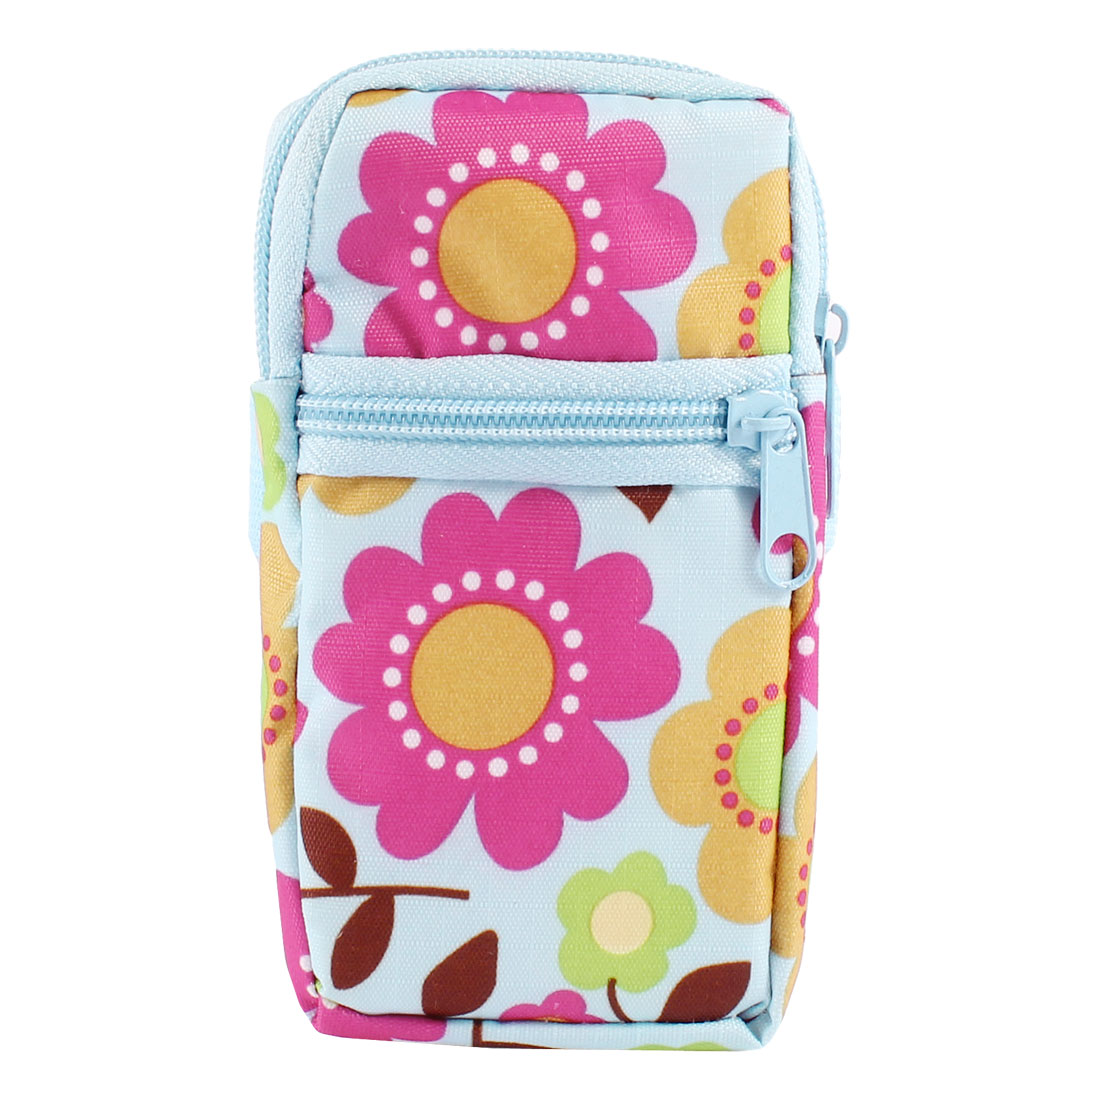 Light Blue Fuchsia Sunflowers Print Dual Compartments Zippered Phone Wrist Bag Holder